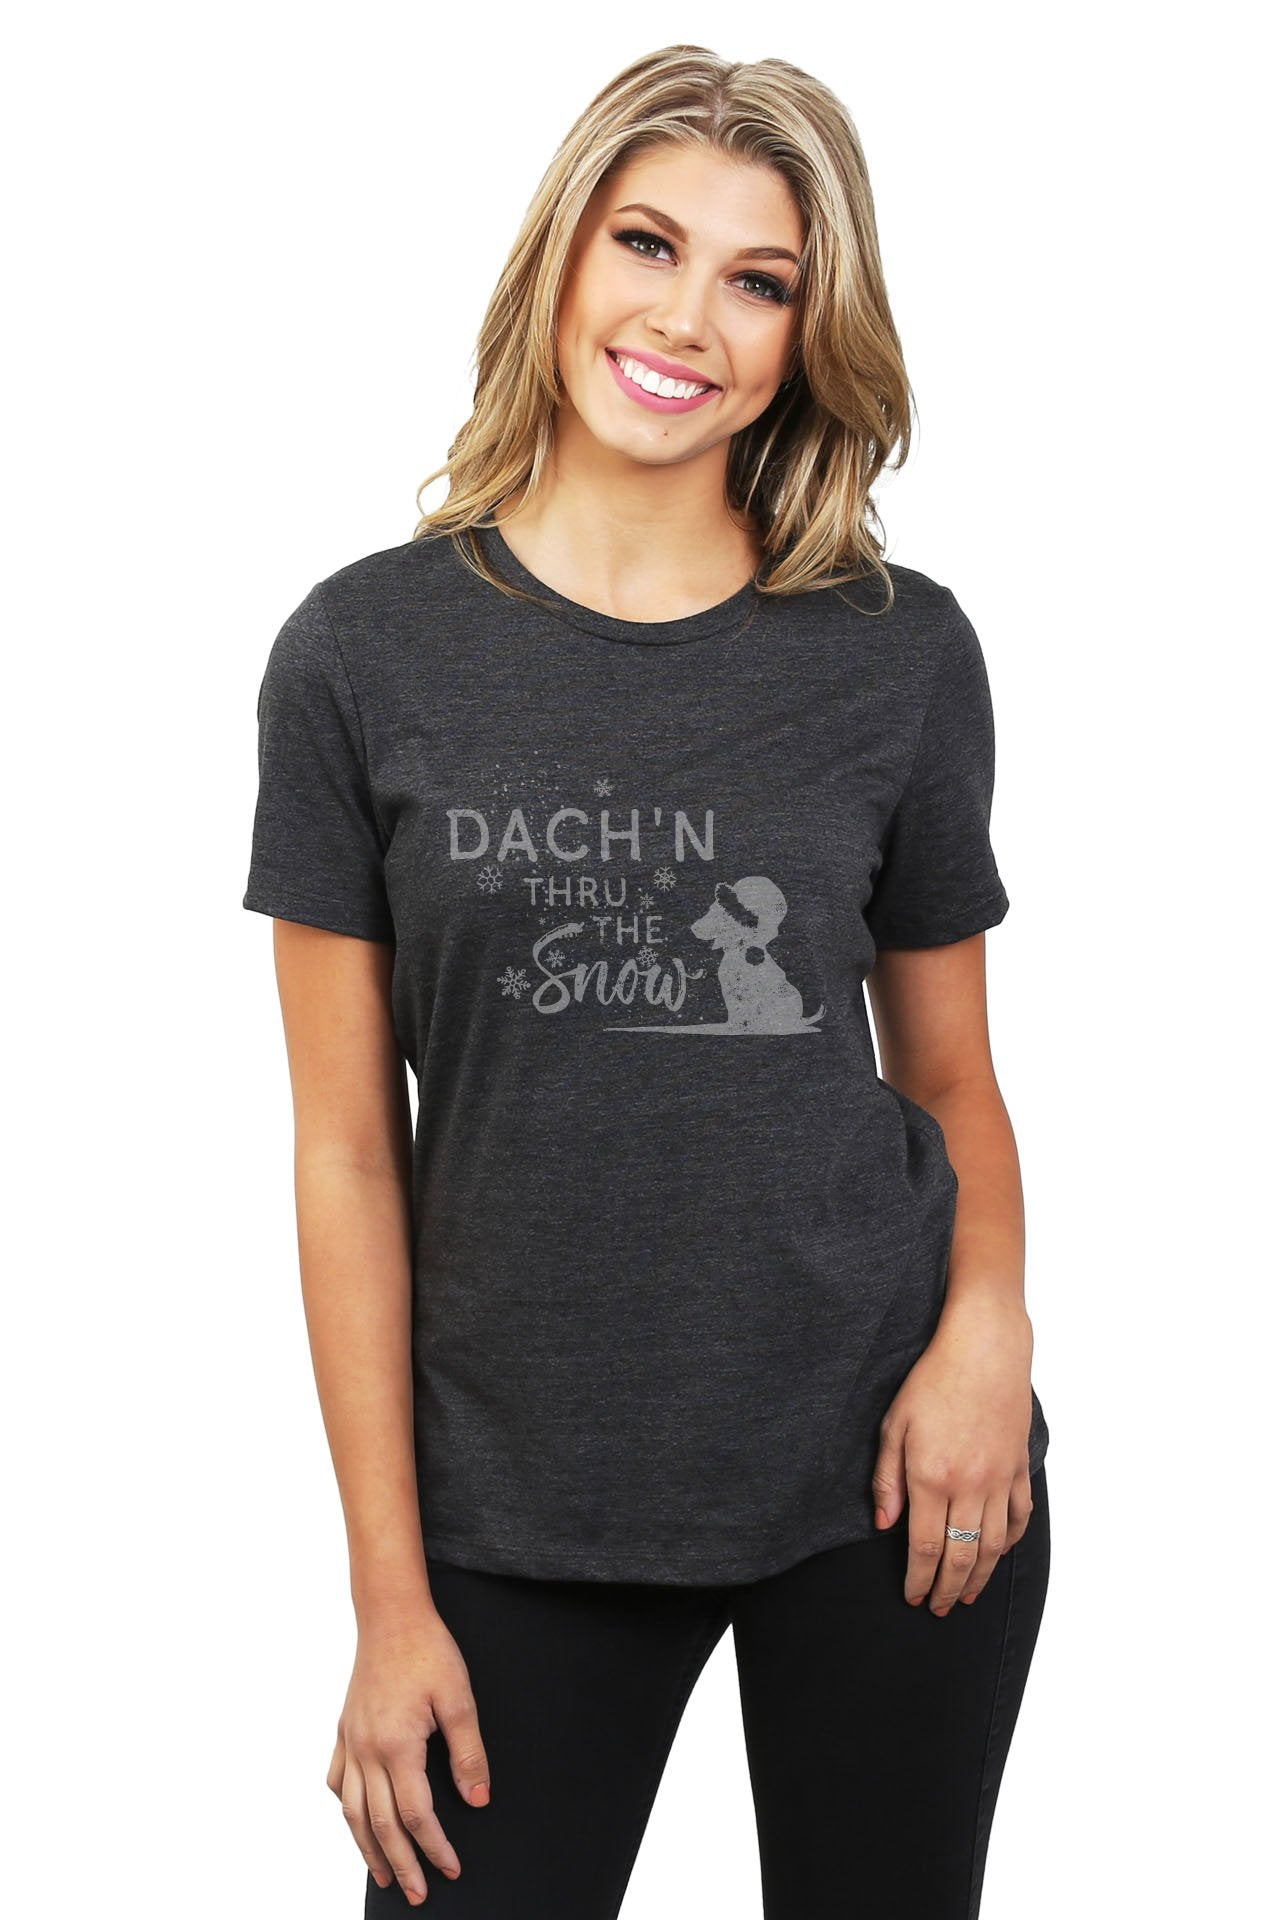 Dach'N Thru The Snow - Thread Tank | Stories You Can Wear | T-Shirts, Tank Tops and Sweatshirts